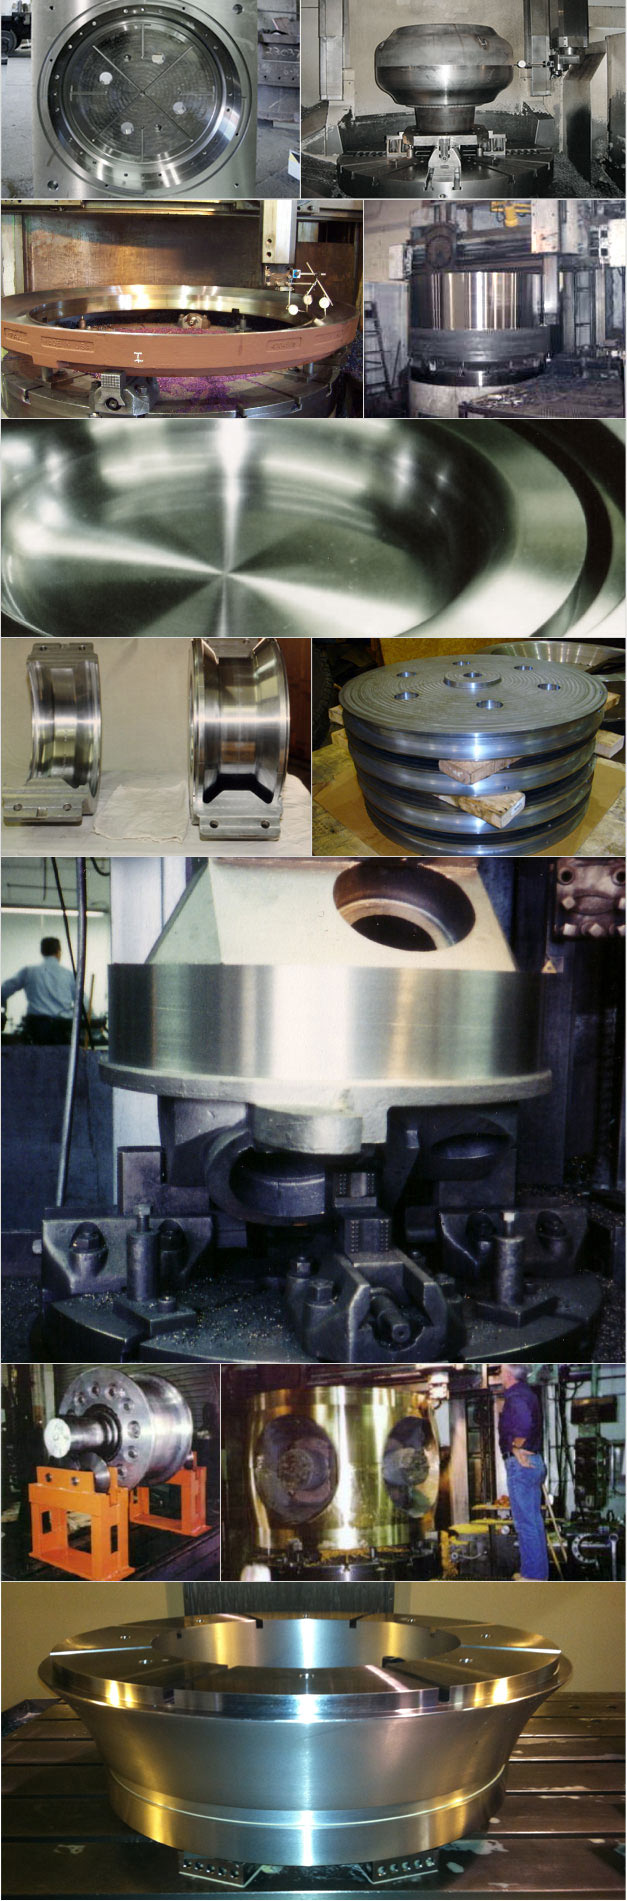 image of large turning